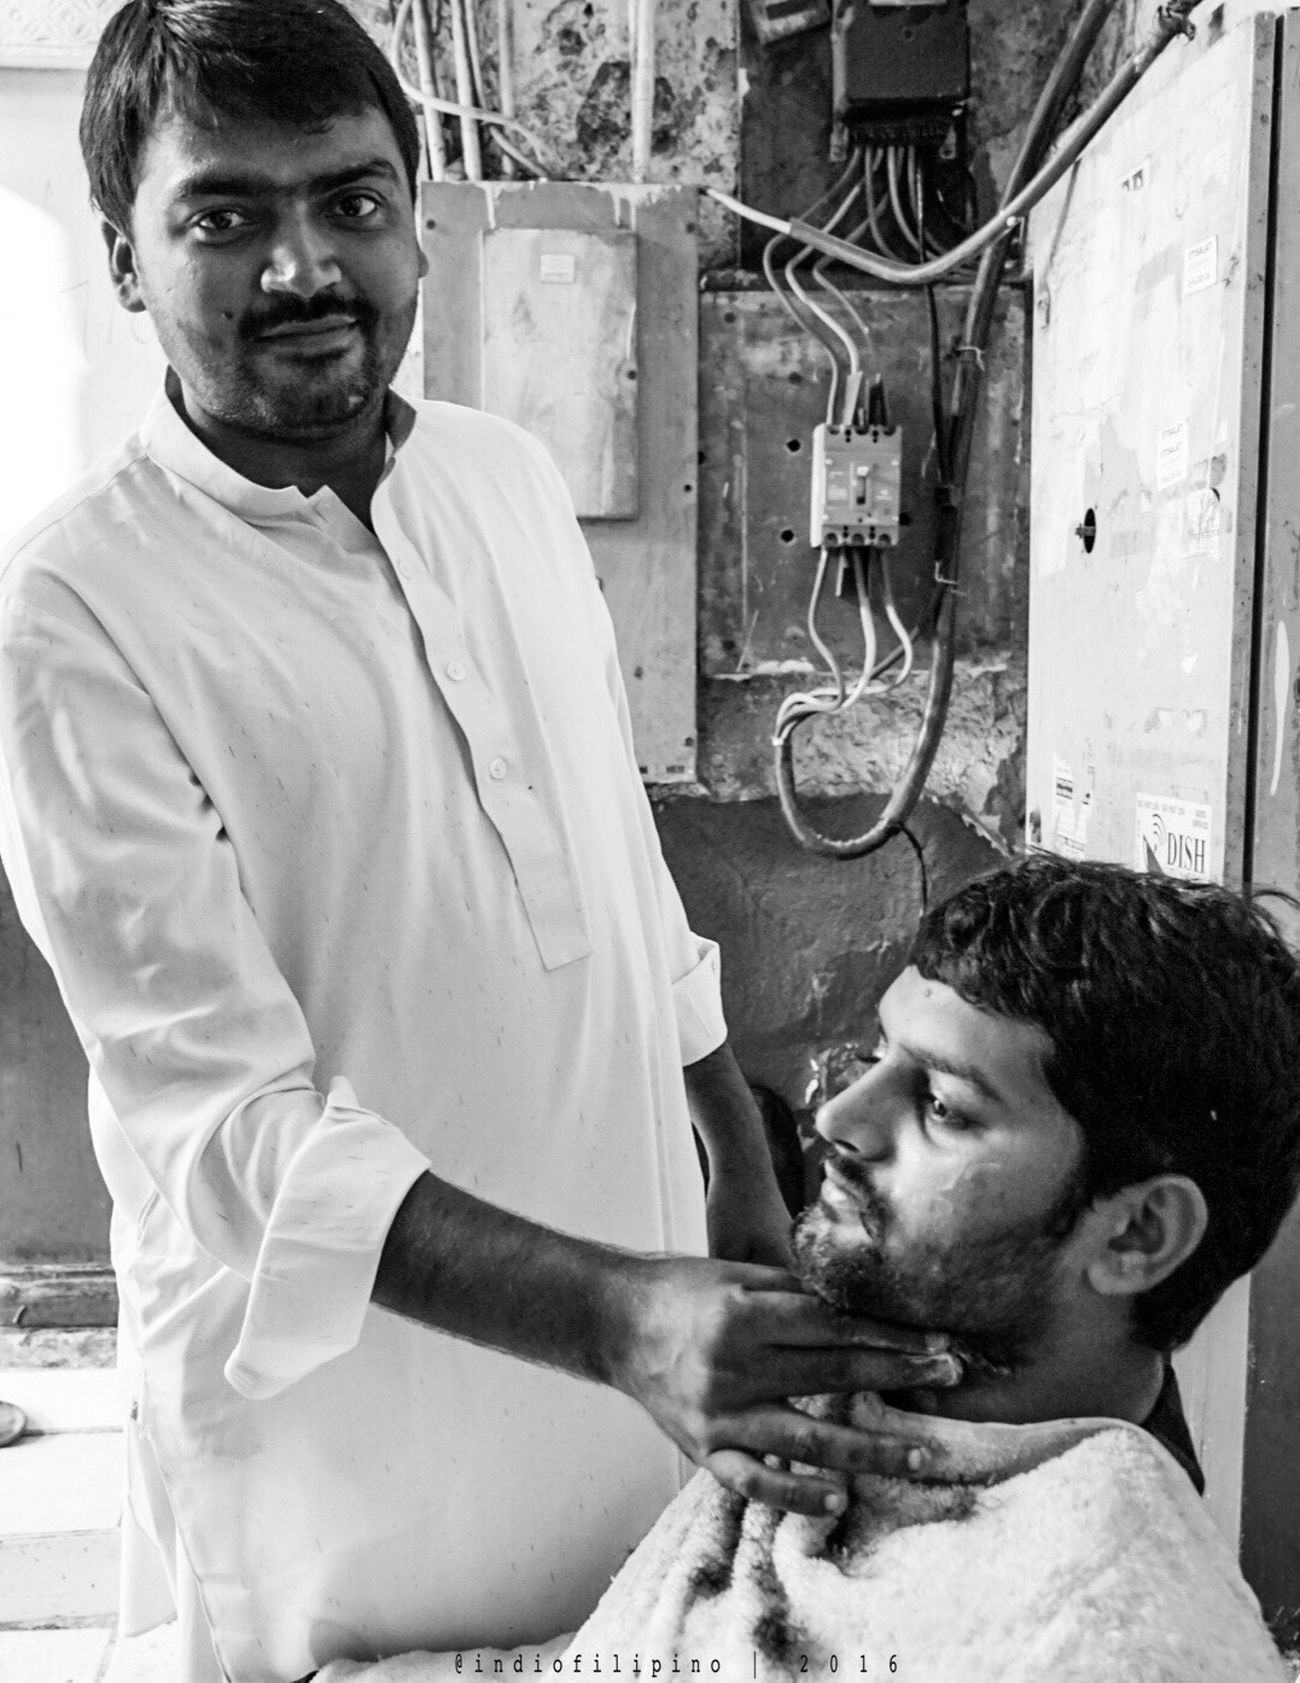 Portrait Looking At Camera Real People Barber People Dailydoseofstreet Streetlife Blackandwhitephotography Streetphotography Exploreuae Liveoutdoors Streetphoto_bw Whynotportraits